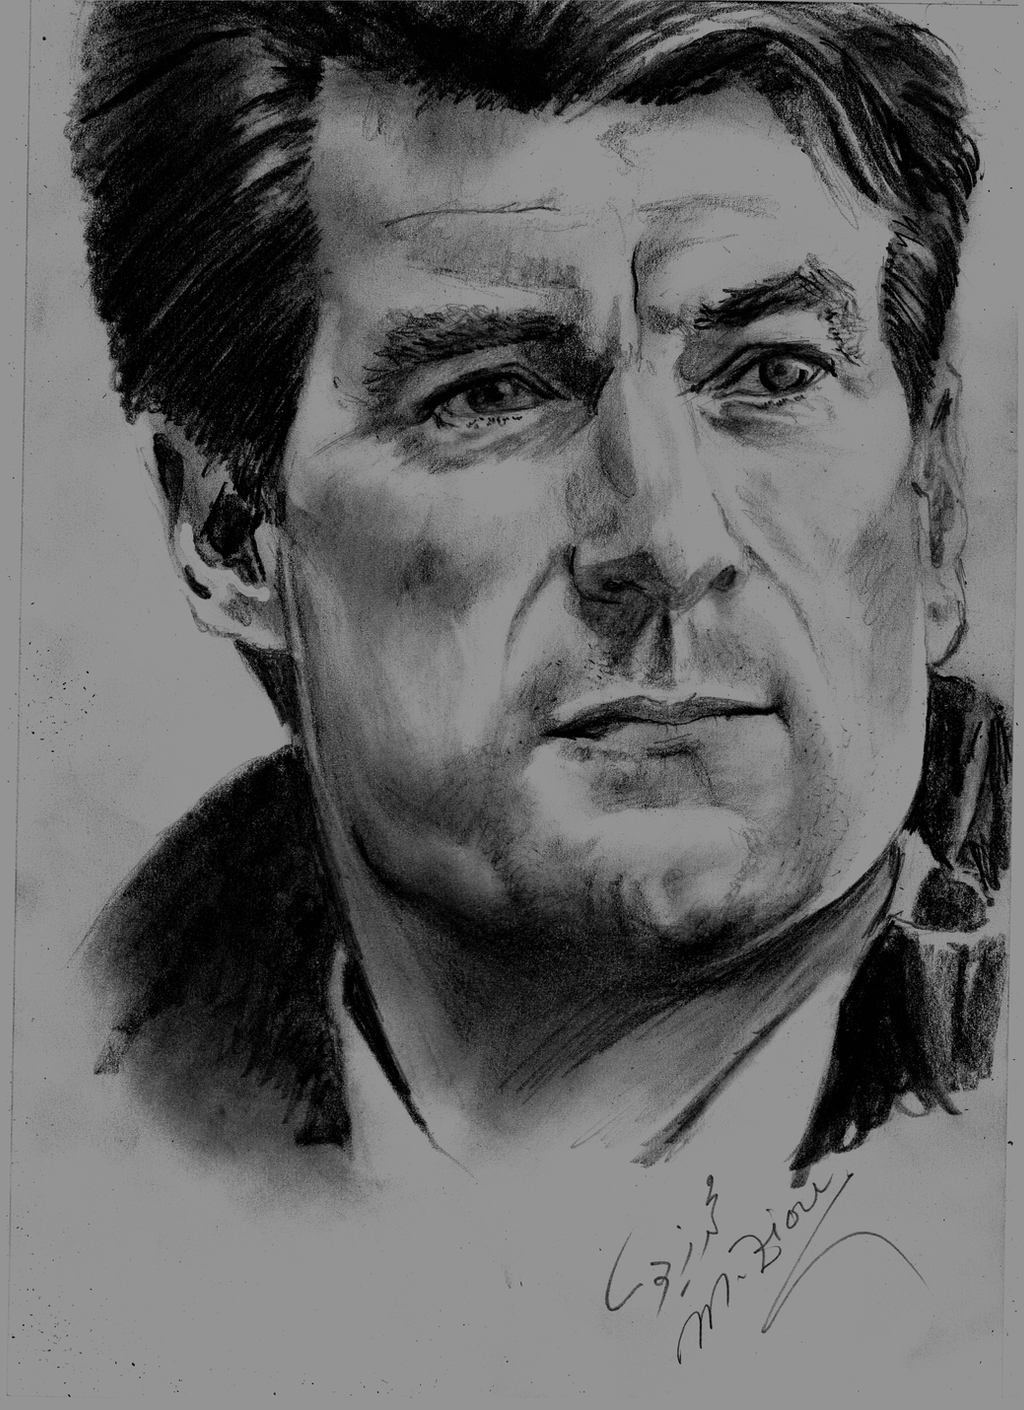 Michael Laudrup by Mohamed Ziou by MoZiou on DeviantArt